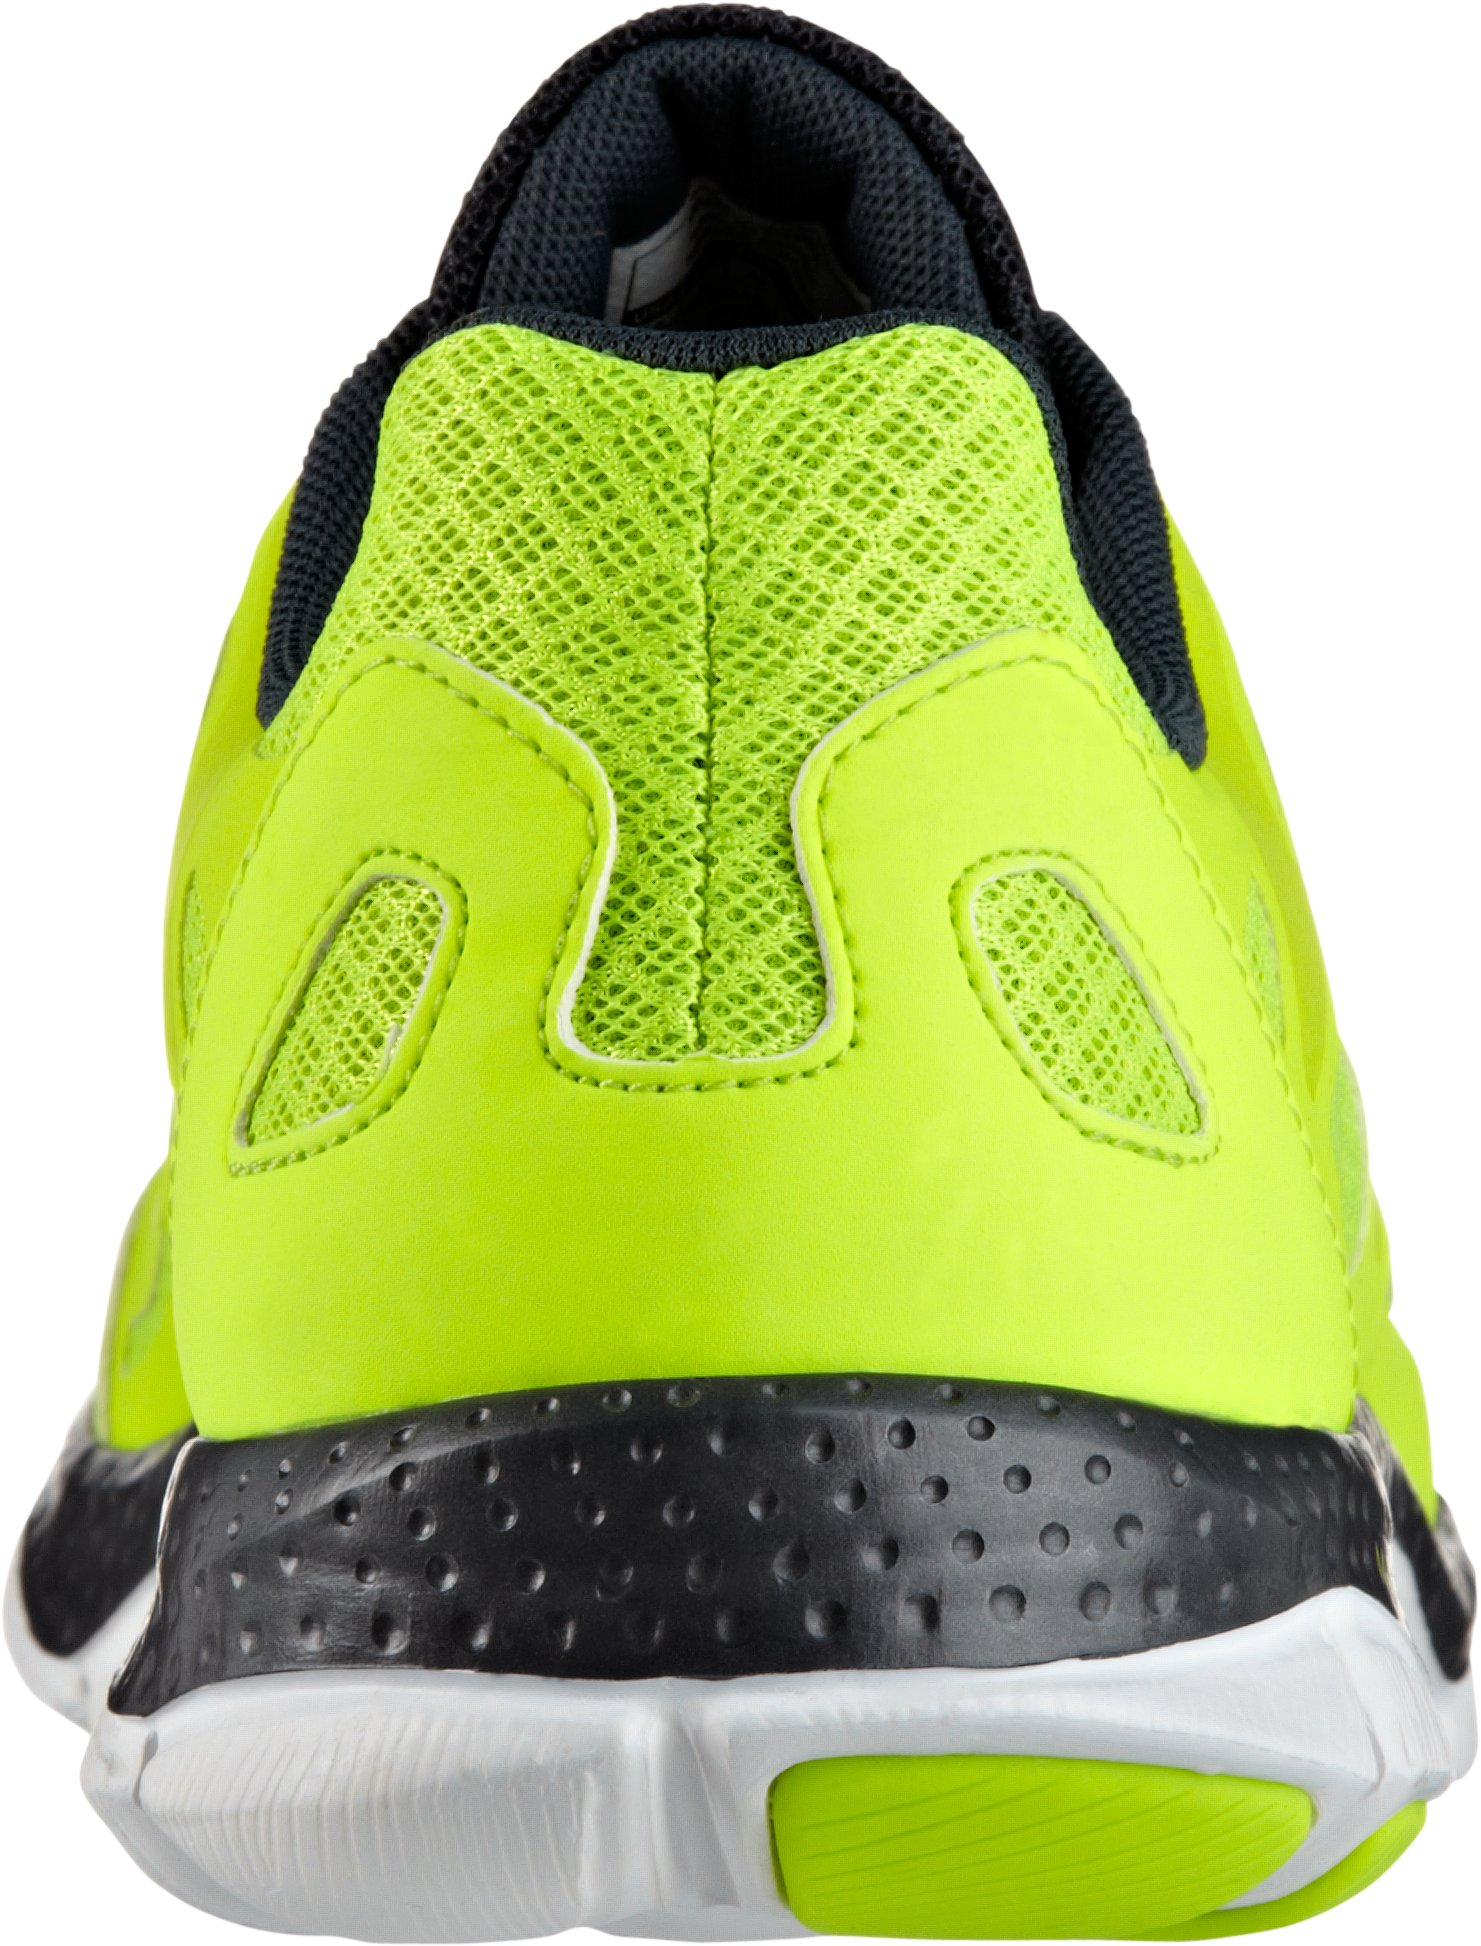 Men's Micro G® Engage Running Shoes, High-Vis Yellow